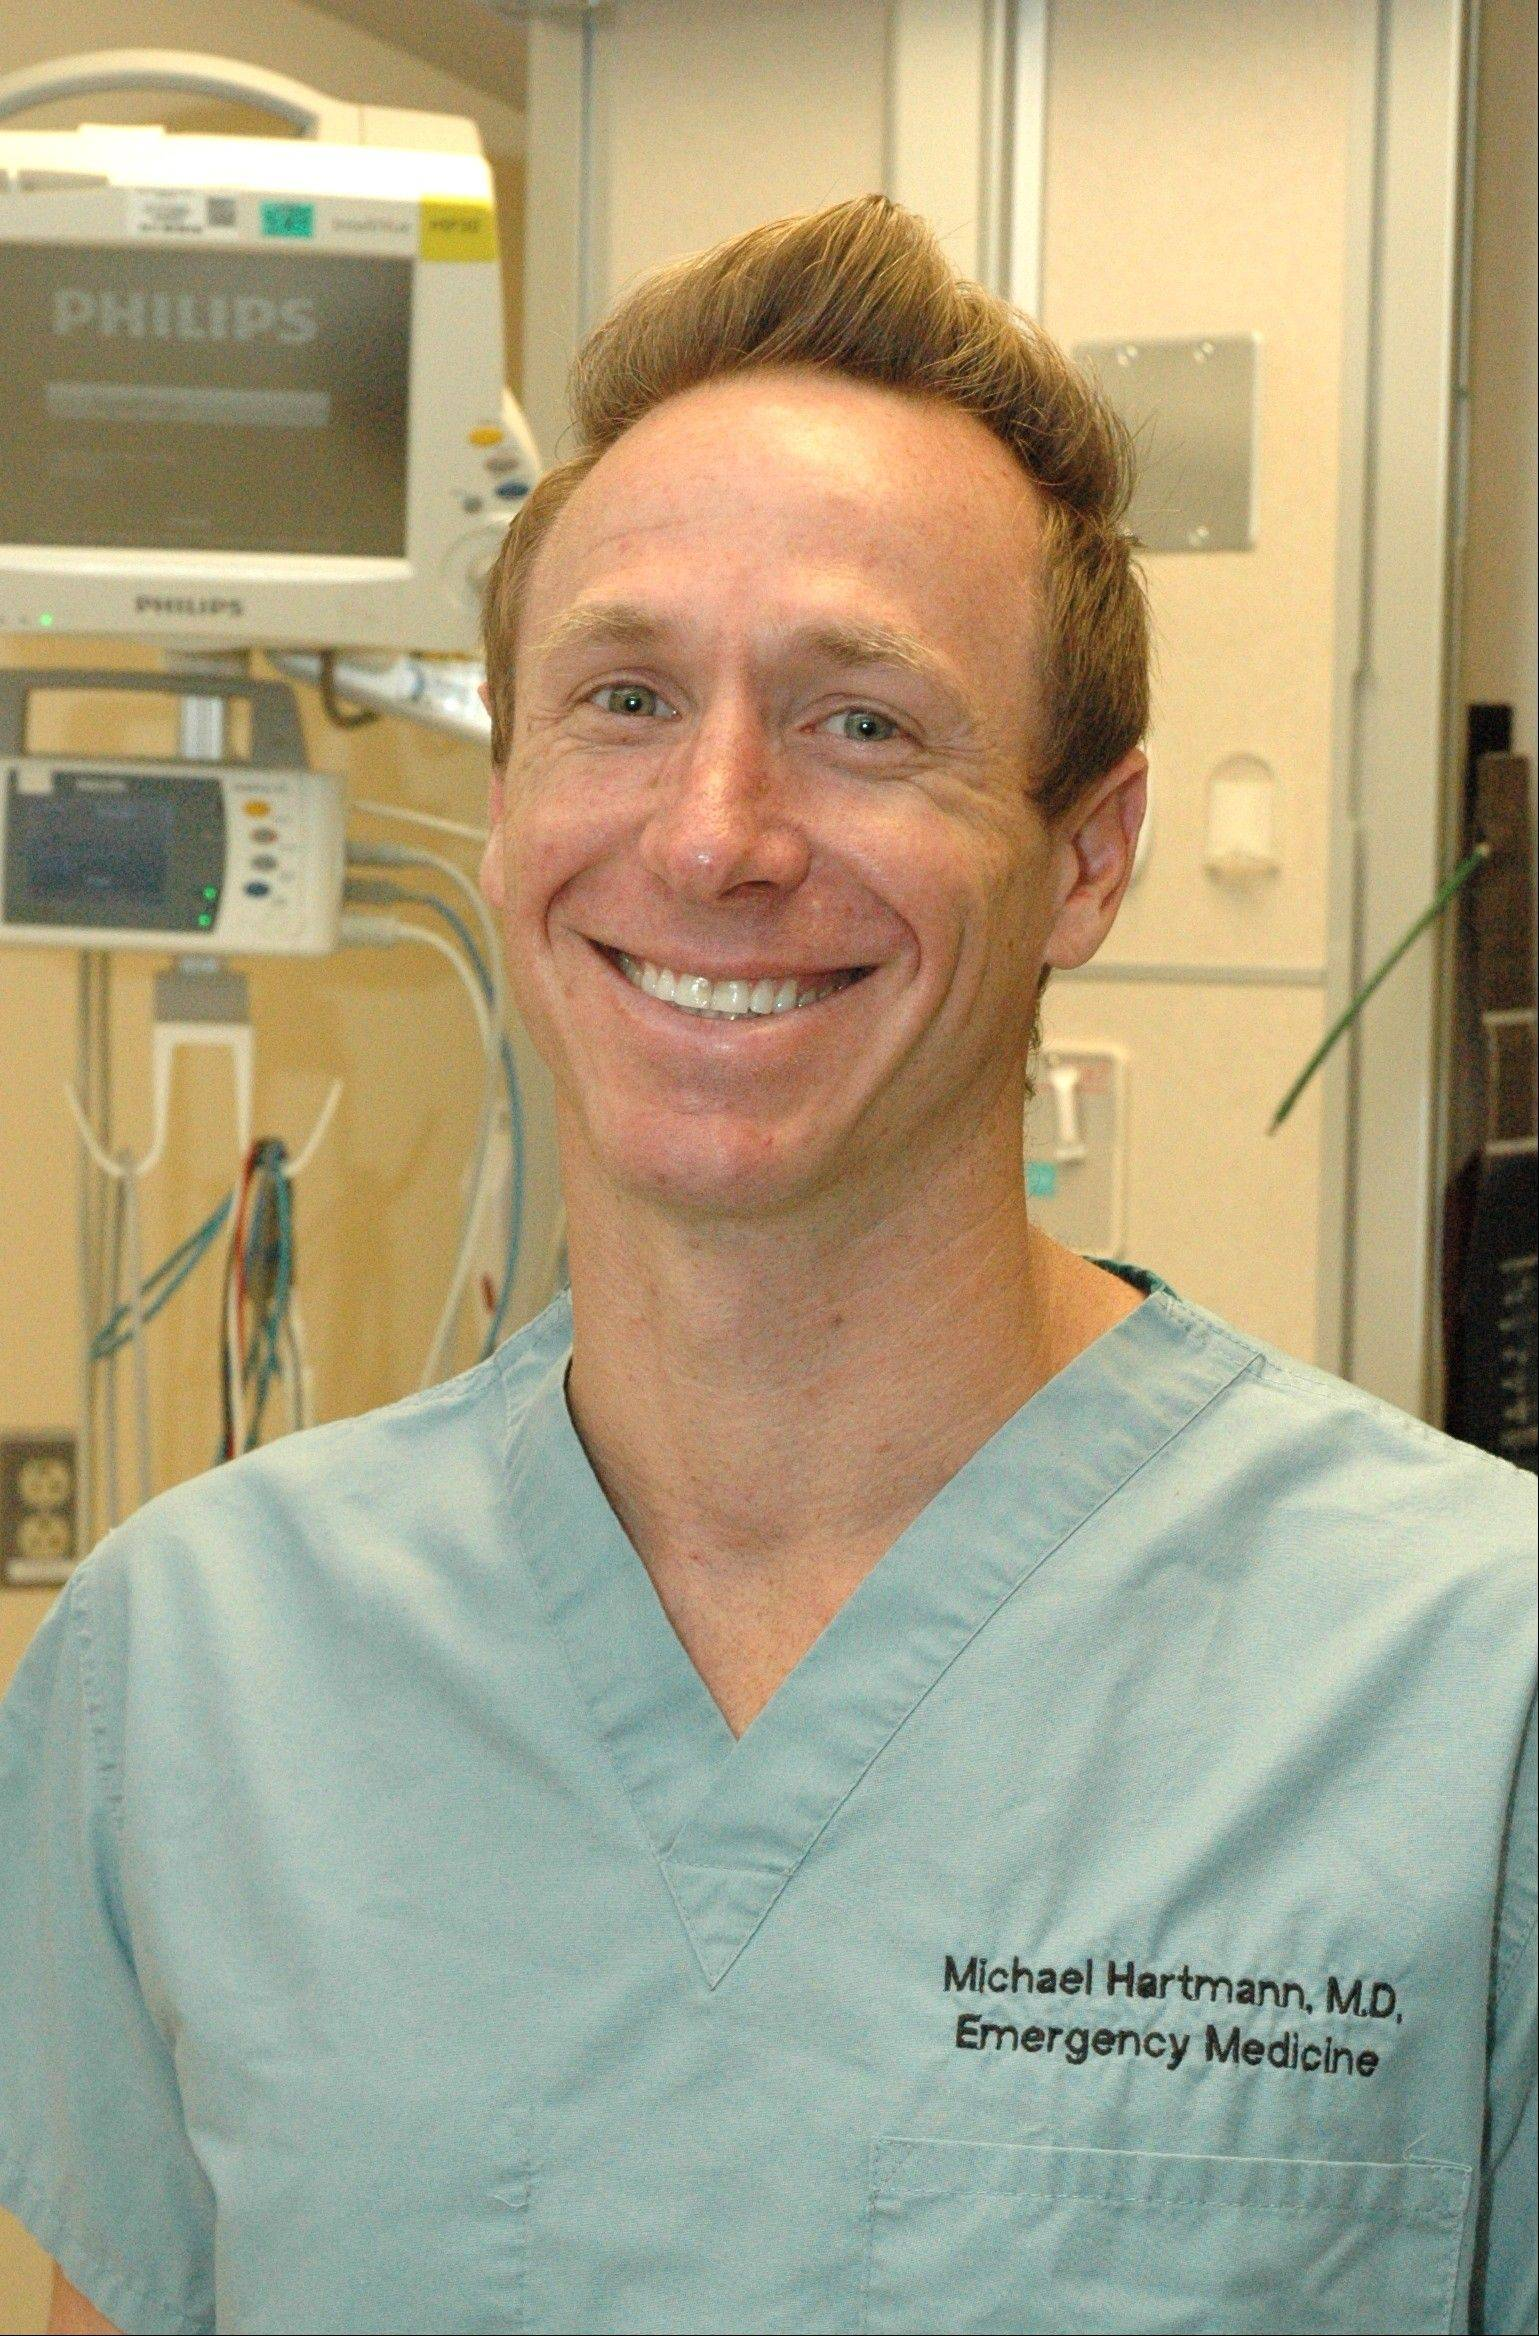 Emergency room physician Dr. Michael Hartmann will serve Sunday as medical director of the inaugural Edward Hospital Naperville Marathon and Half Marathon.